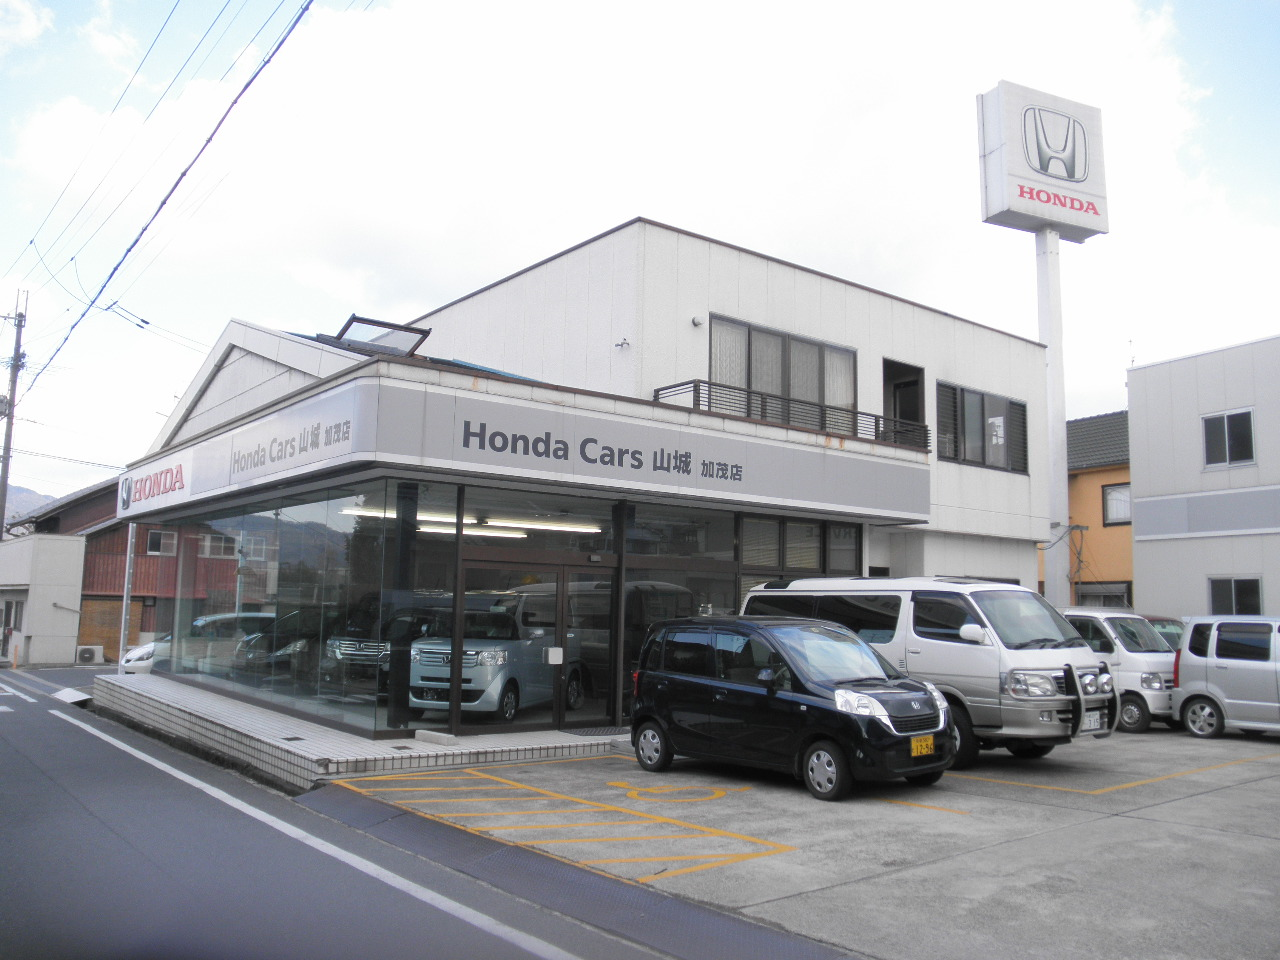 south motors honda miami florida used cars for sale